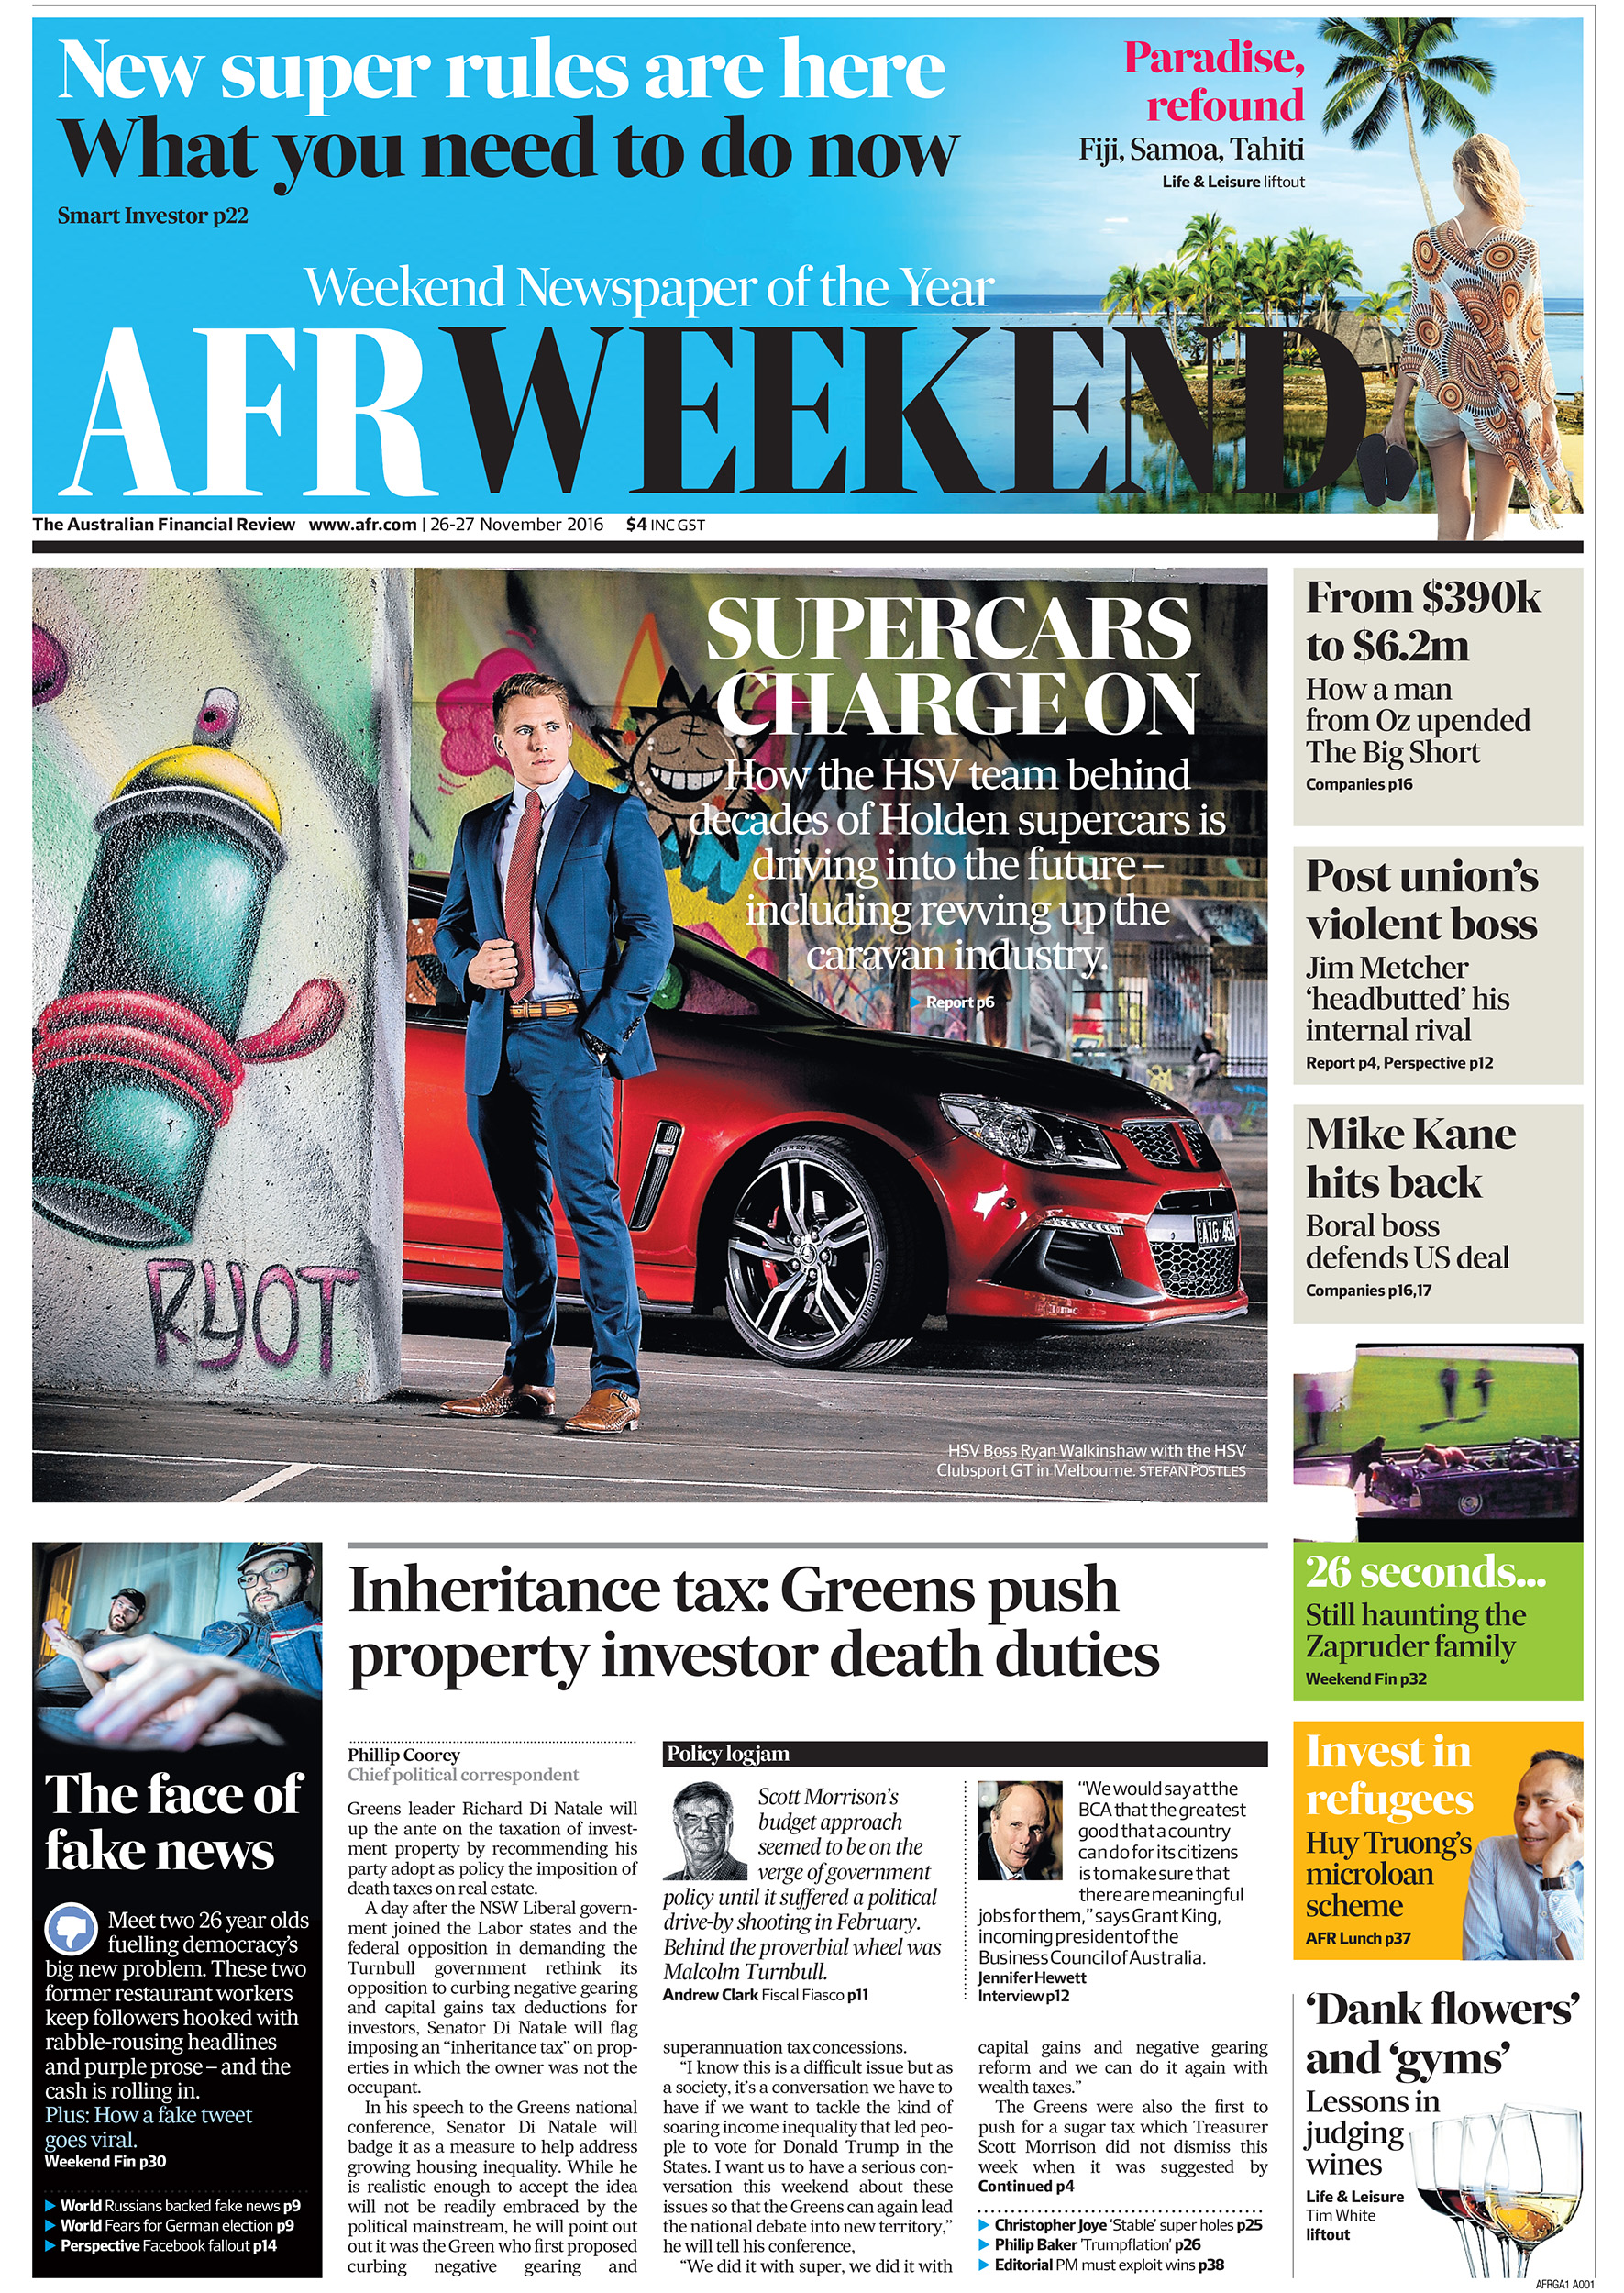 Newspaper front cover photography portrait of Ryan Walkinshaw HSV boss